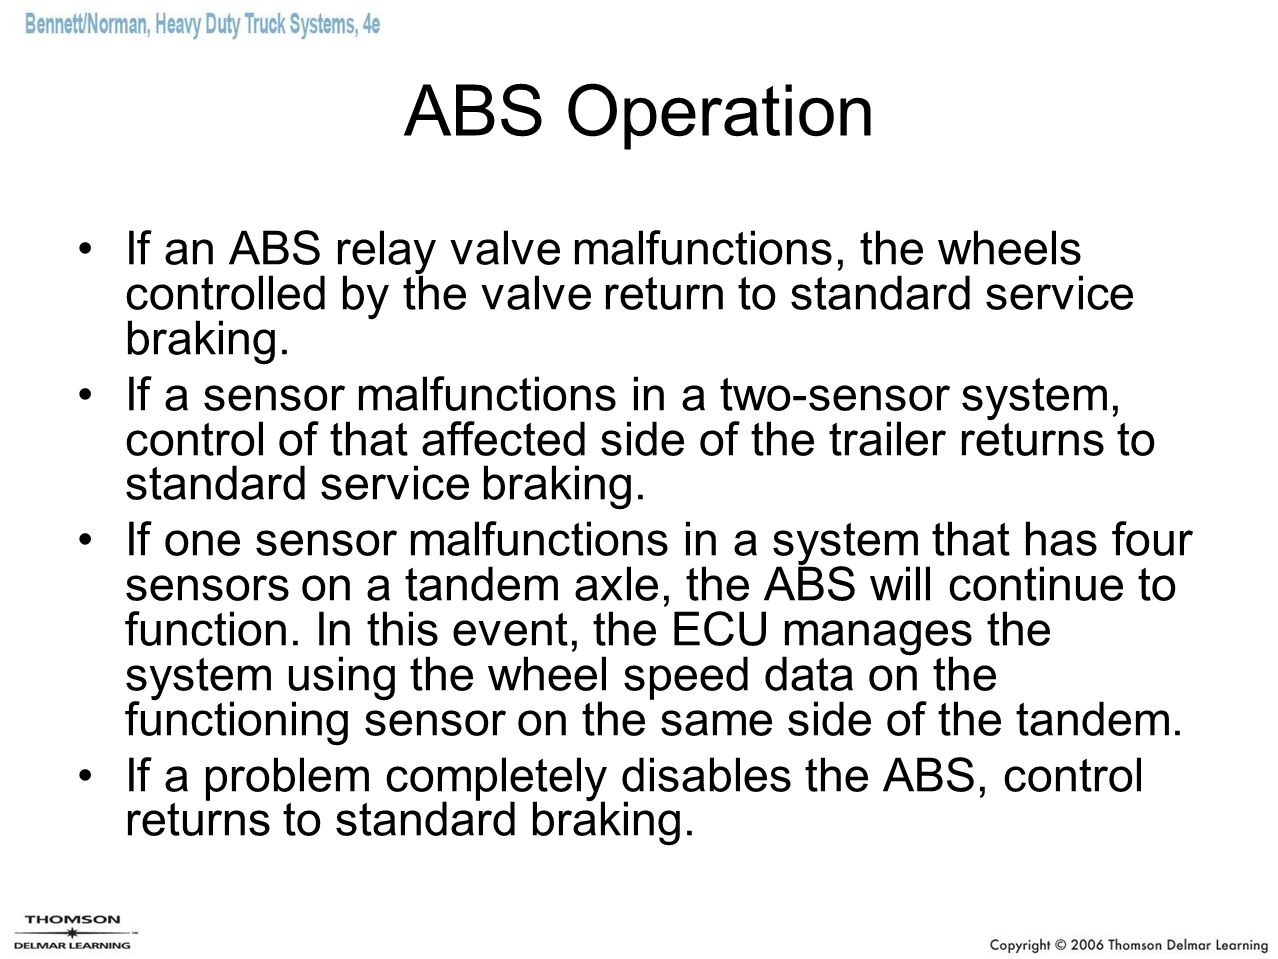 ABS Operation If an ABS relay valve malfunctions, the wheels controlled by the valve return to standard service braking.